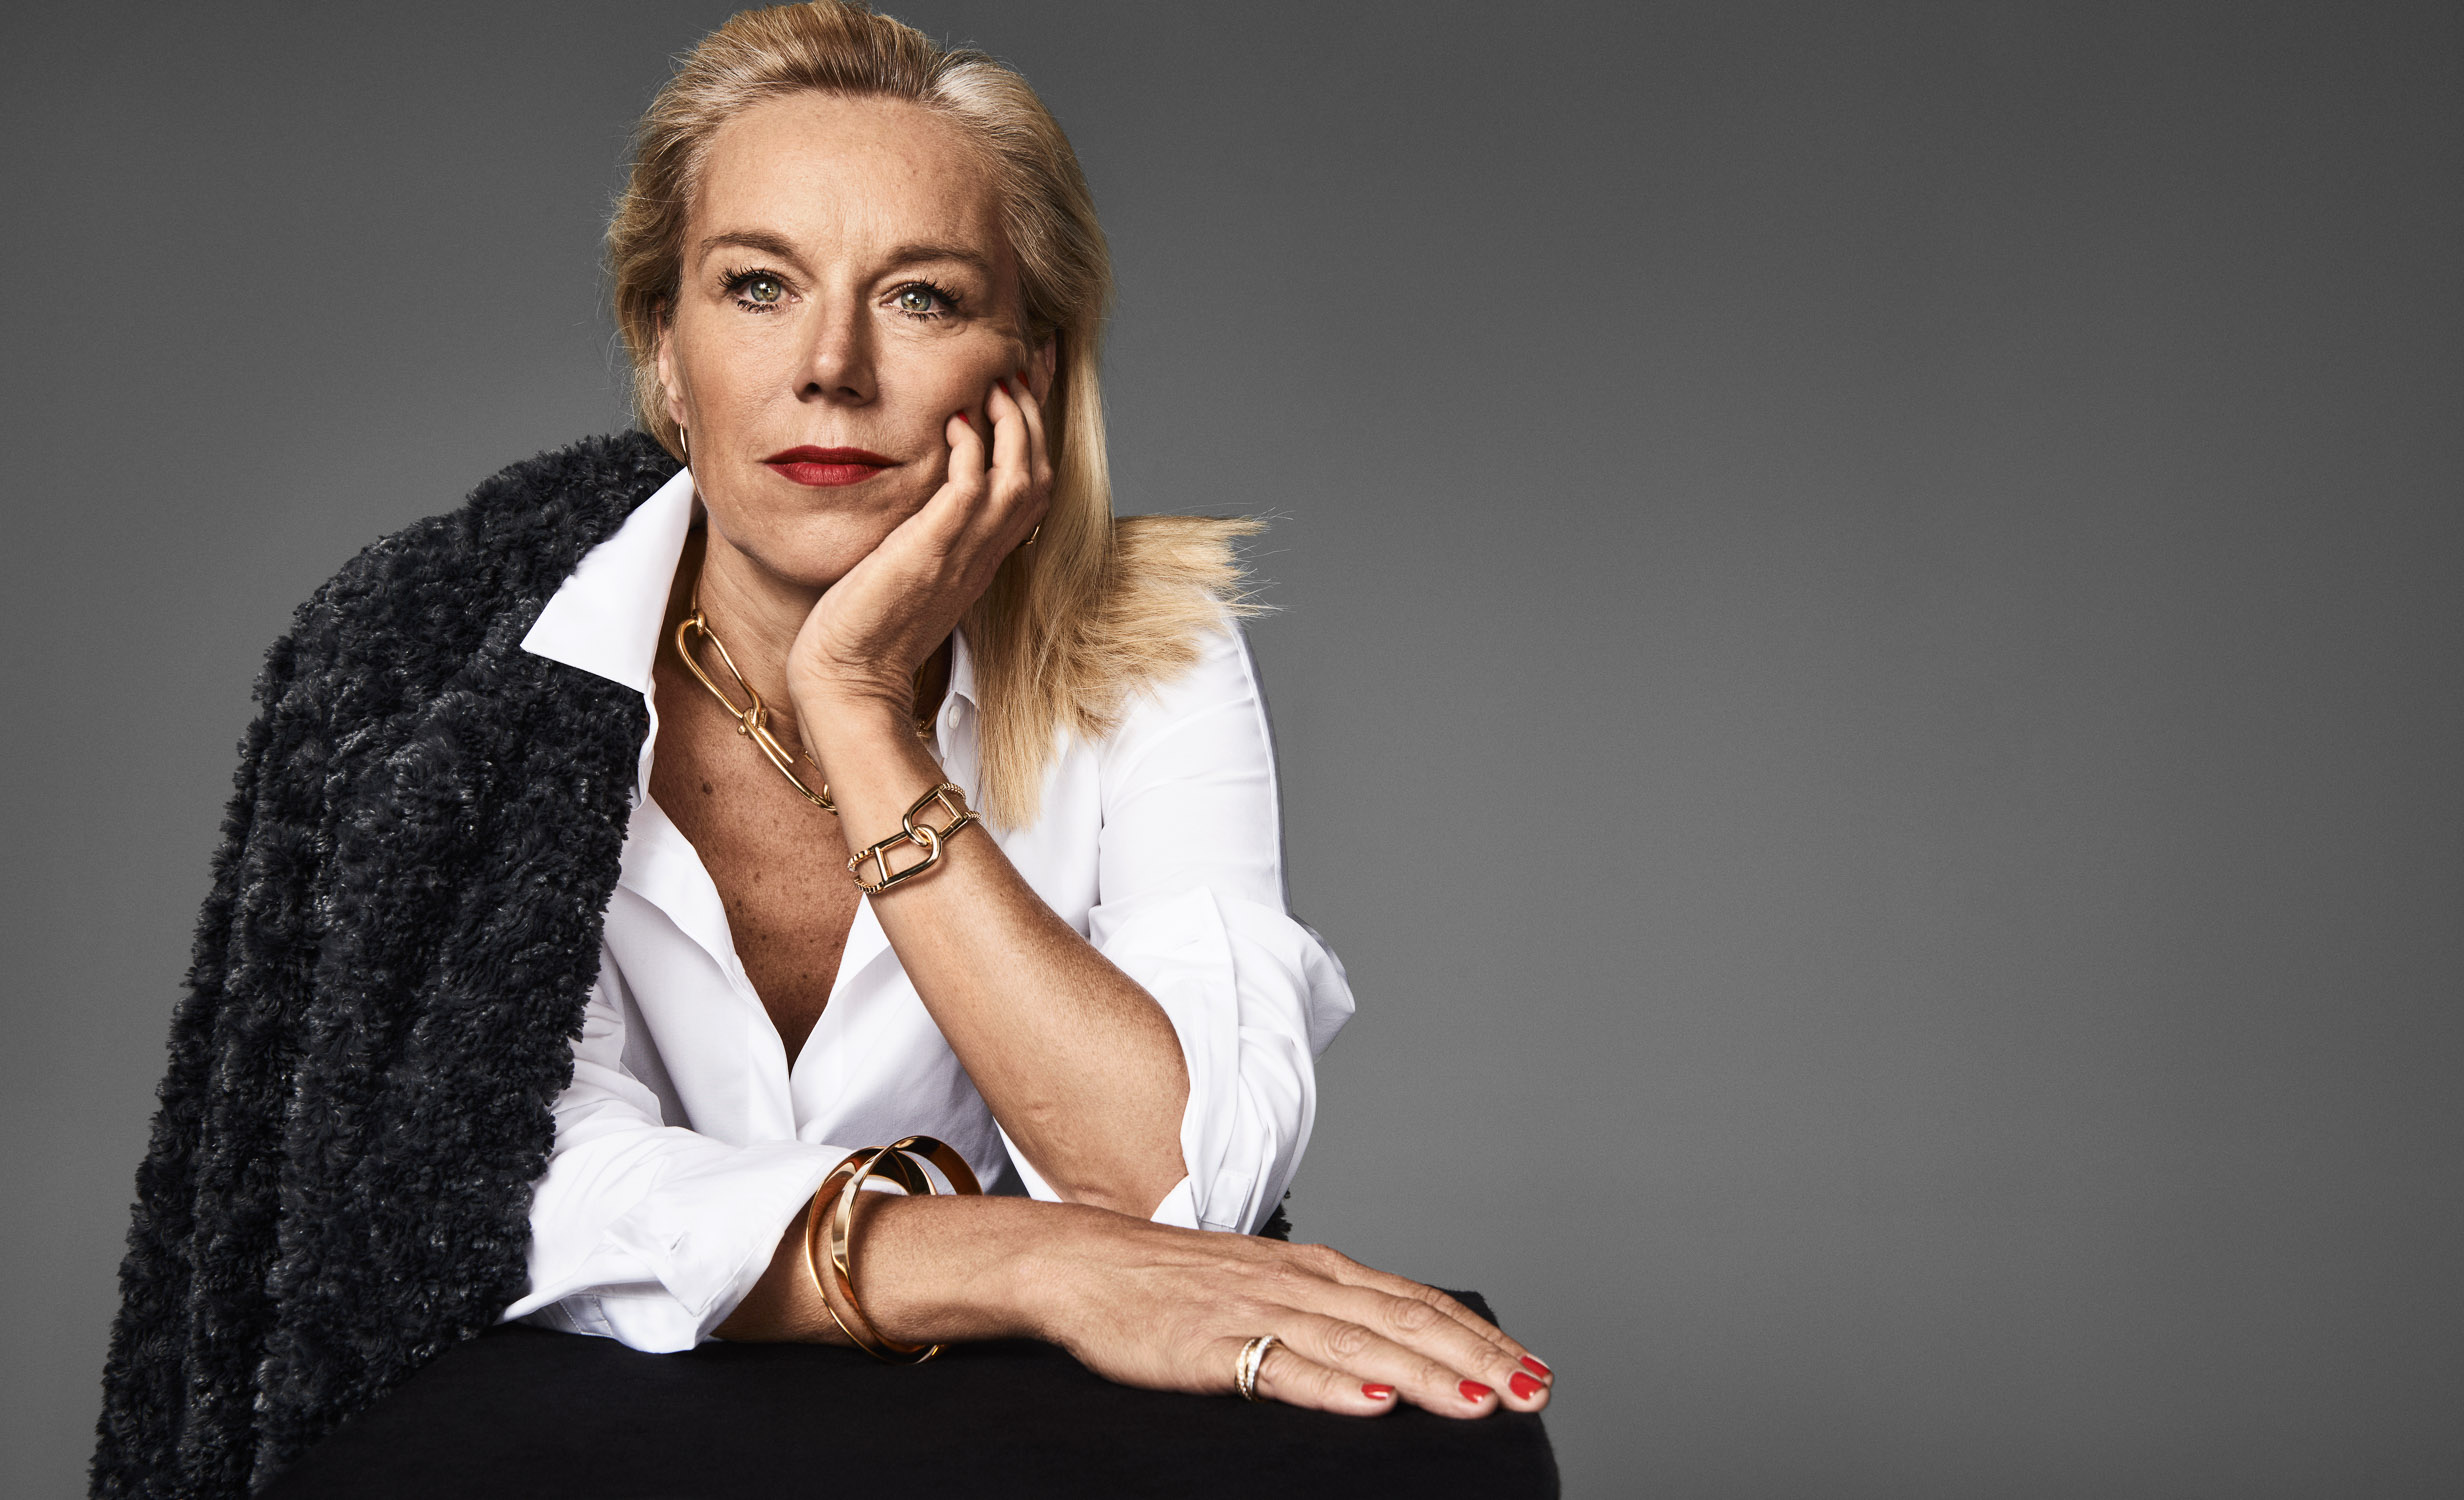 Sigrid Kaag for VogueNL by Marc de Groot